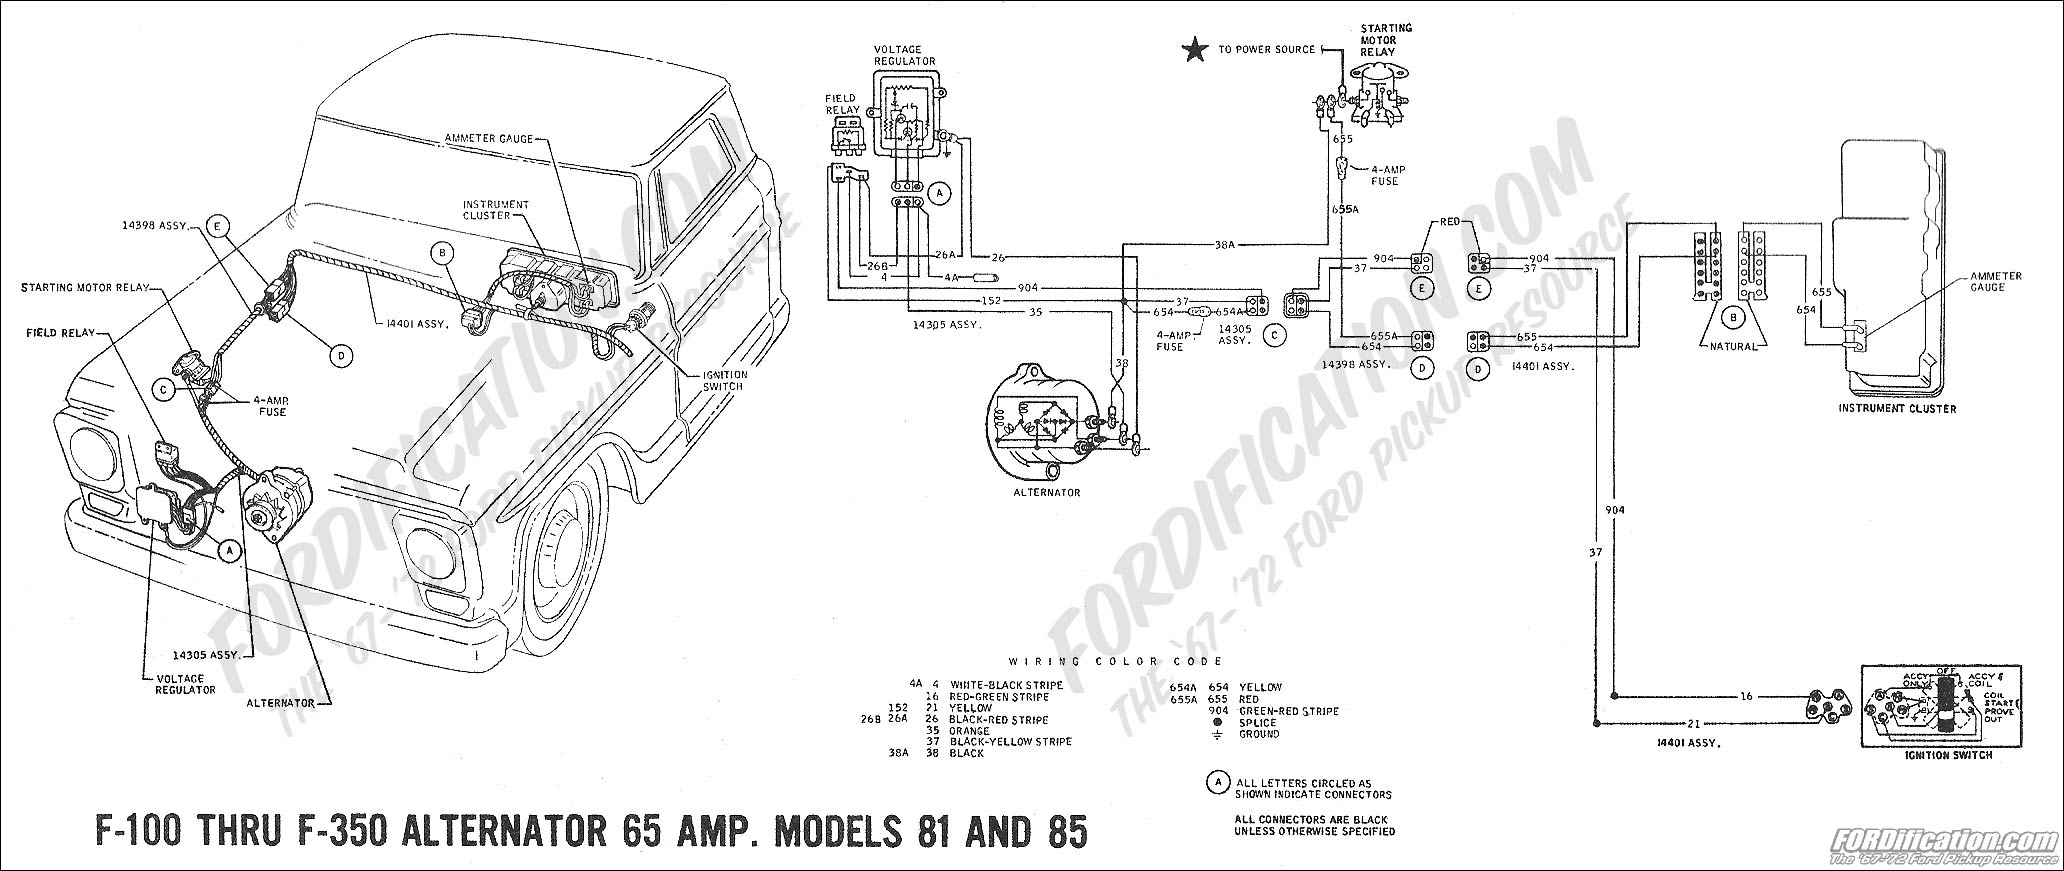 ford truck technical drawings and schematics section h wiring 1969 f 100 thru f 350 alternator 65 amp models 81 85